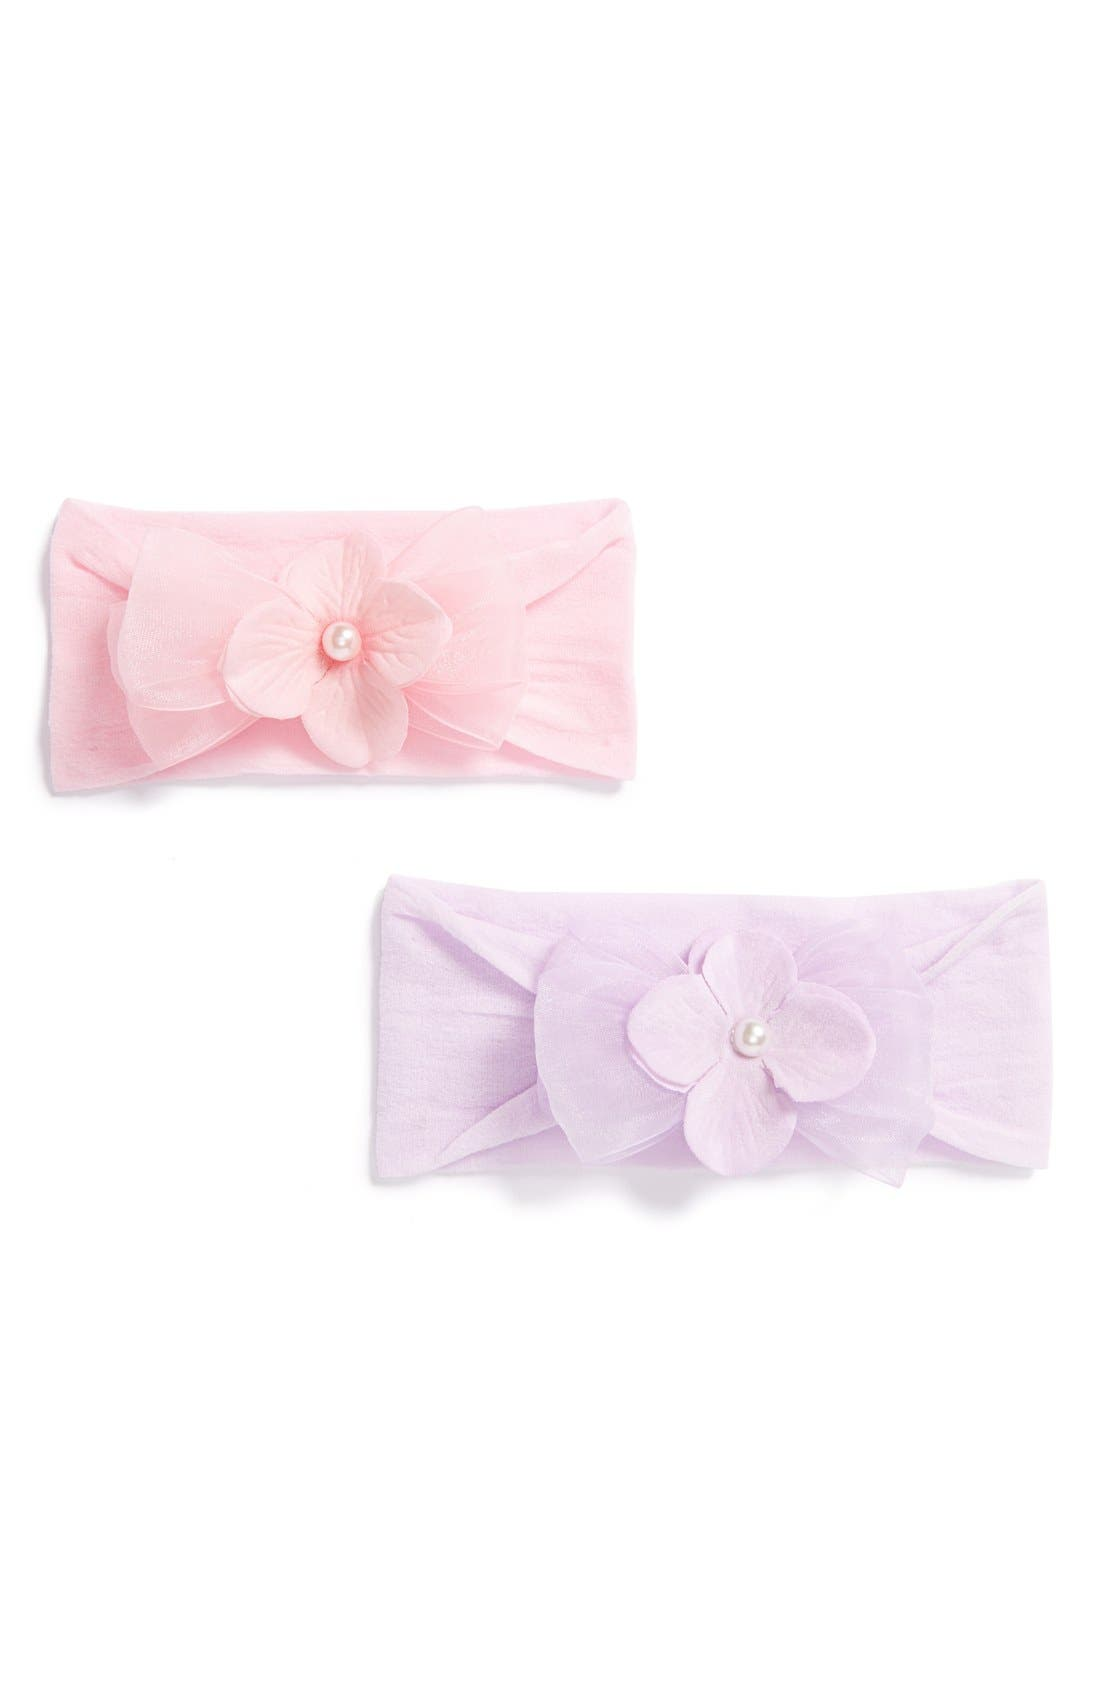 Alternate Image 1 Selected - Baby Bling Classic Headband (2-Pack) (Baby)